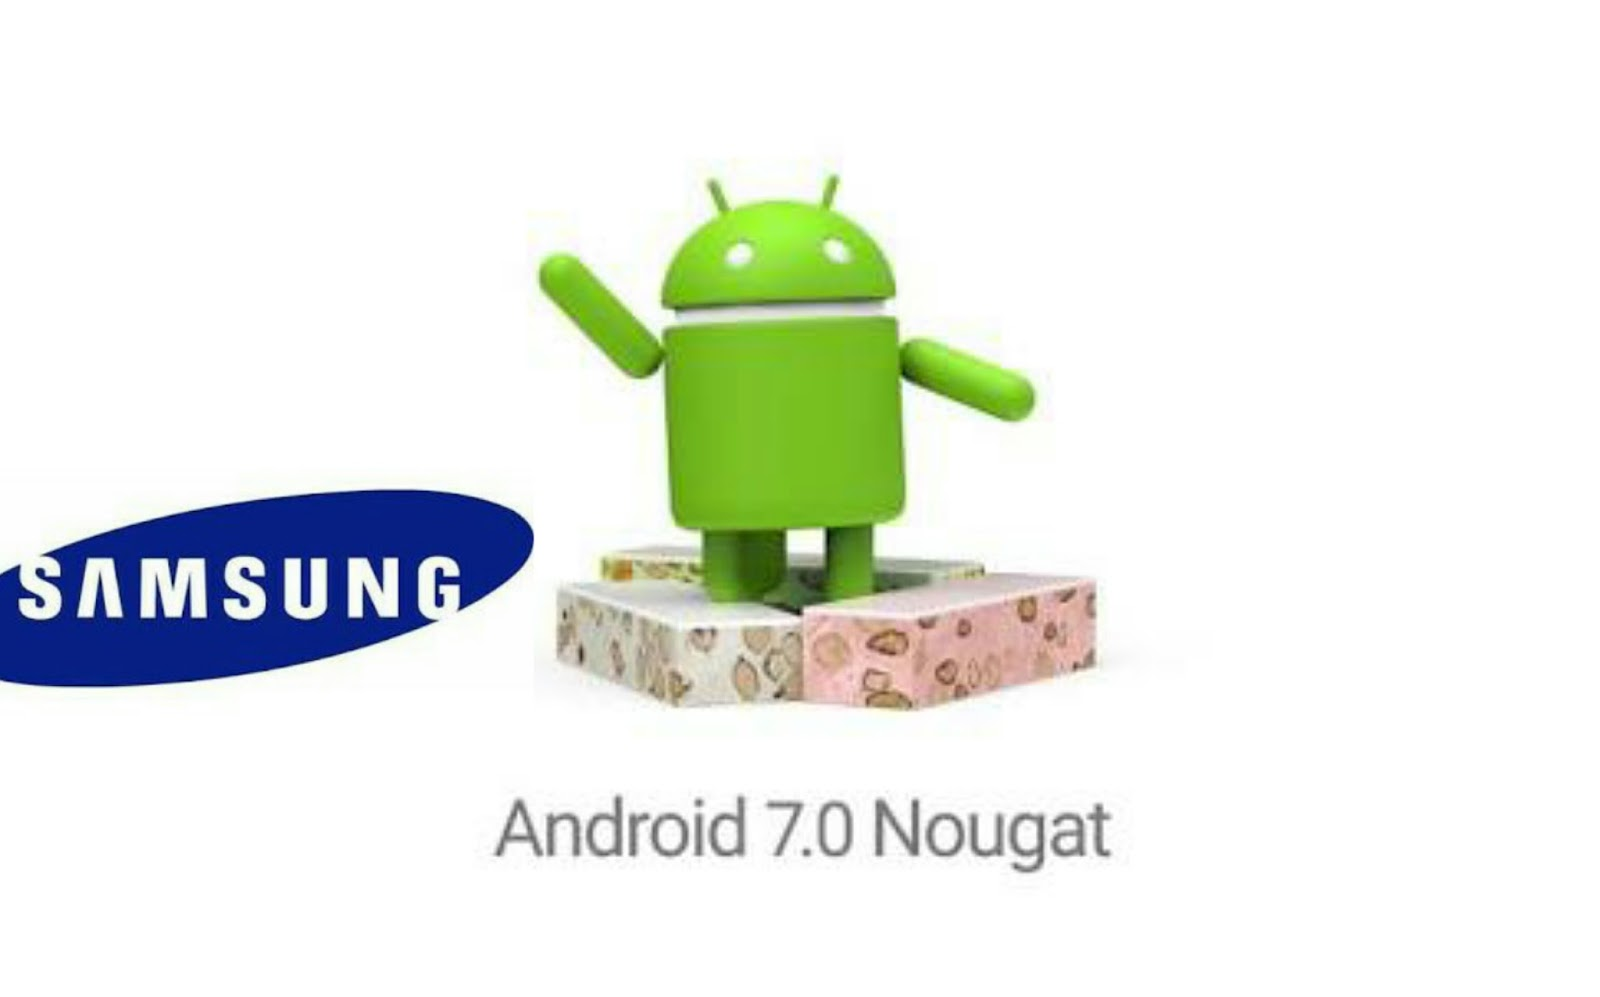 Samsung android 7.0